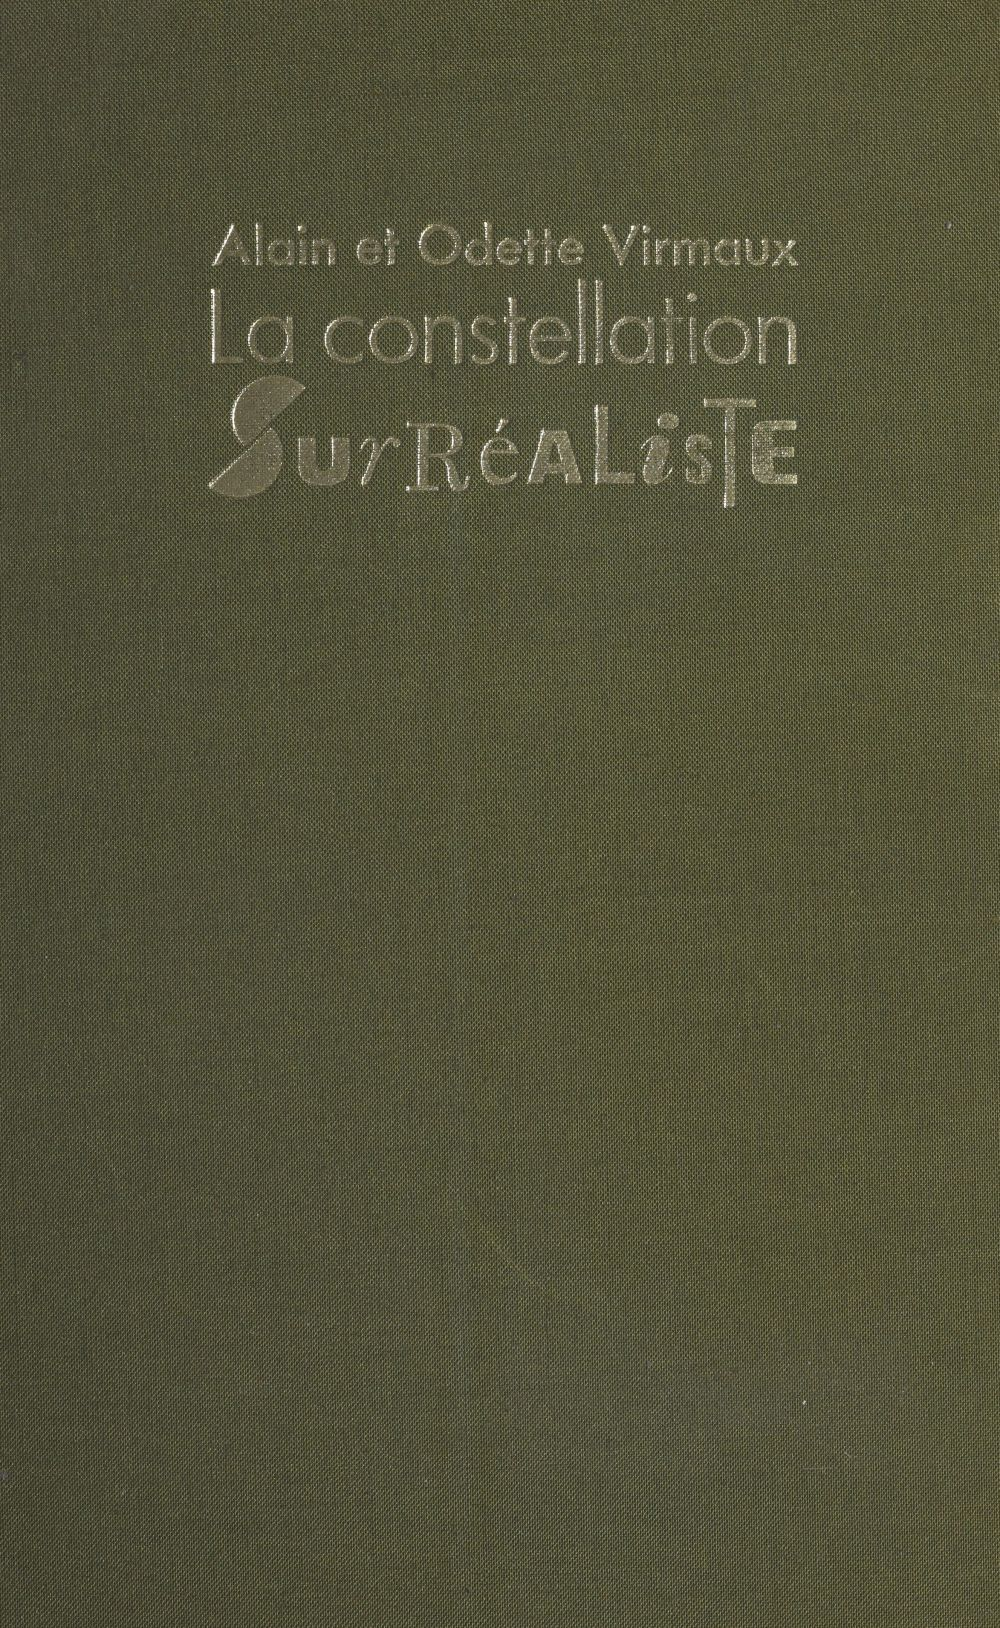 La Constellation surréaliste